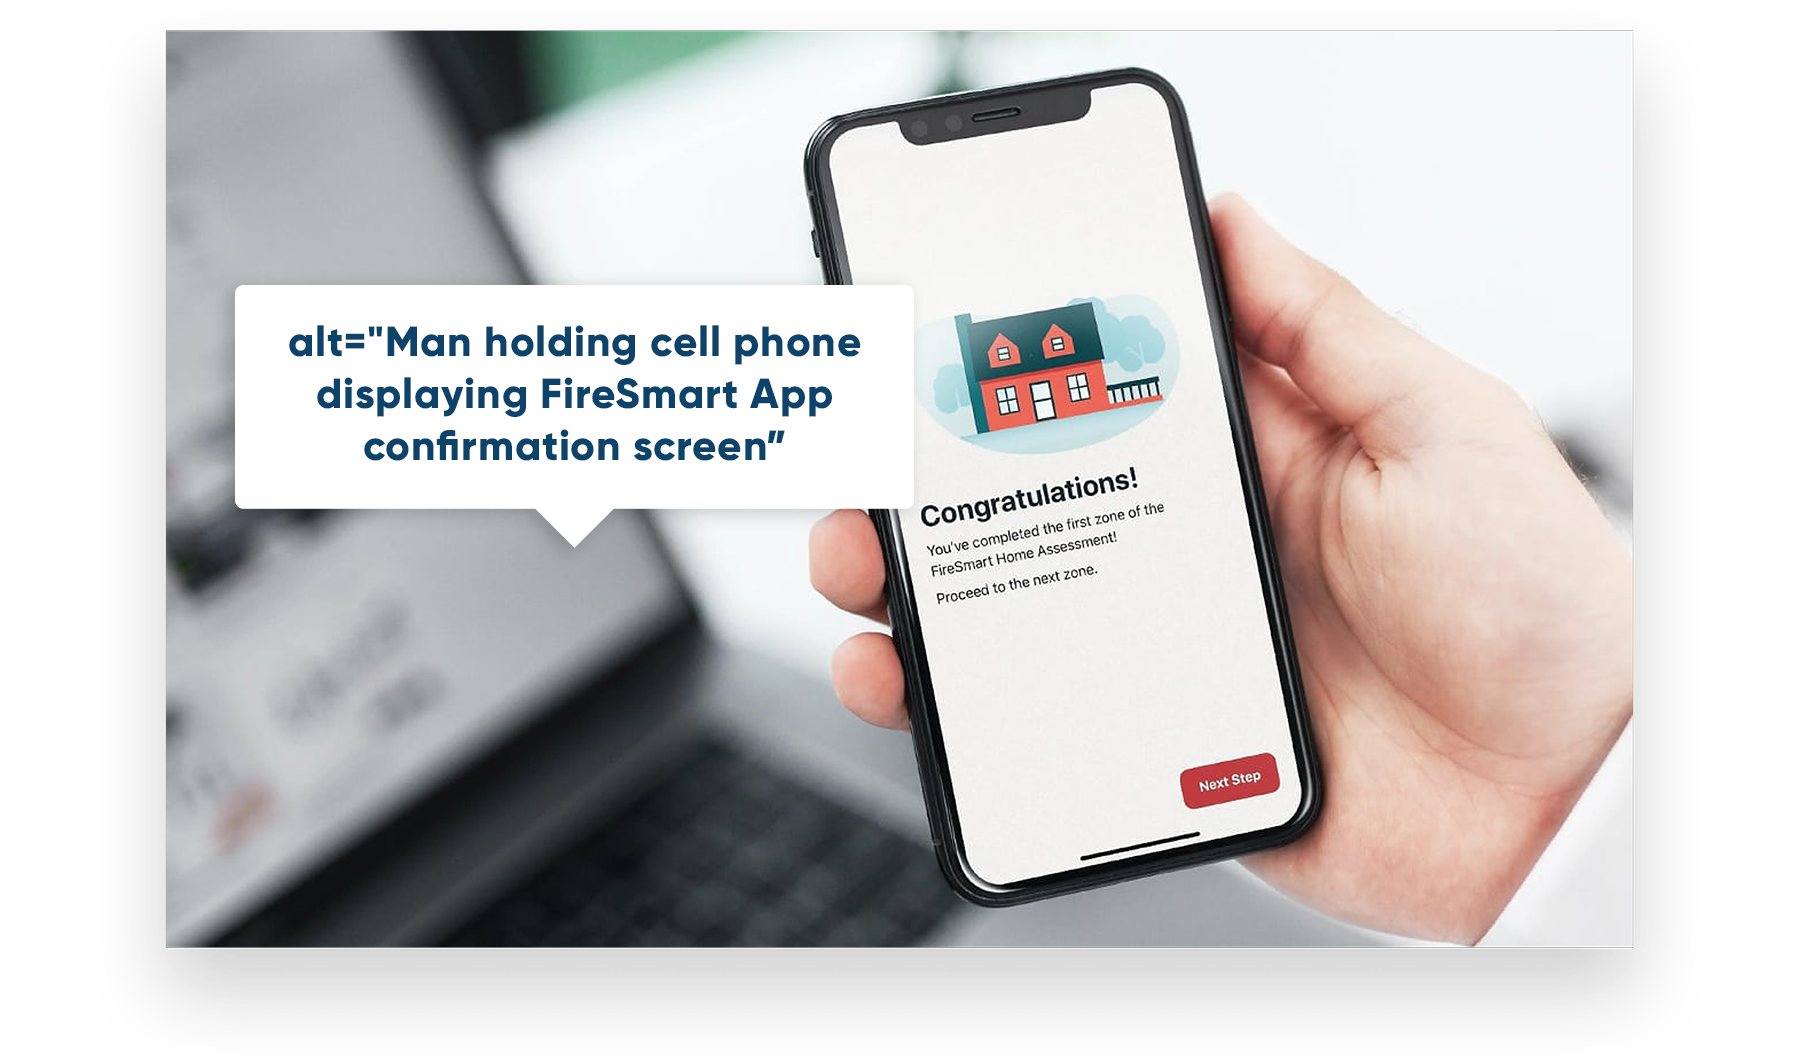 image showing an example of alternative text ie. Man holding cell phone displaying FireSmart App confirmation screen